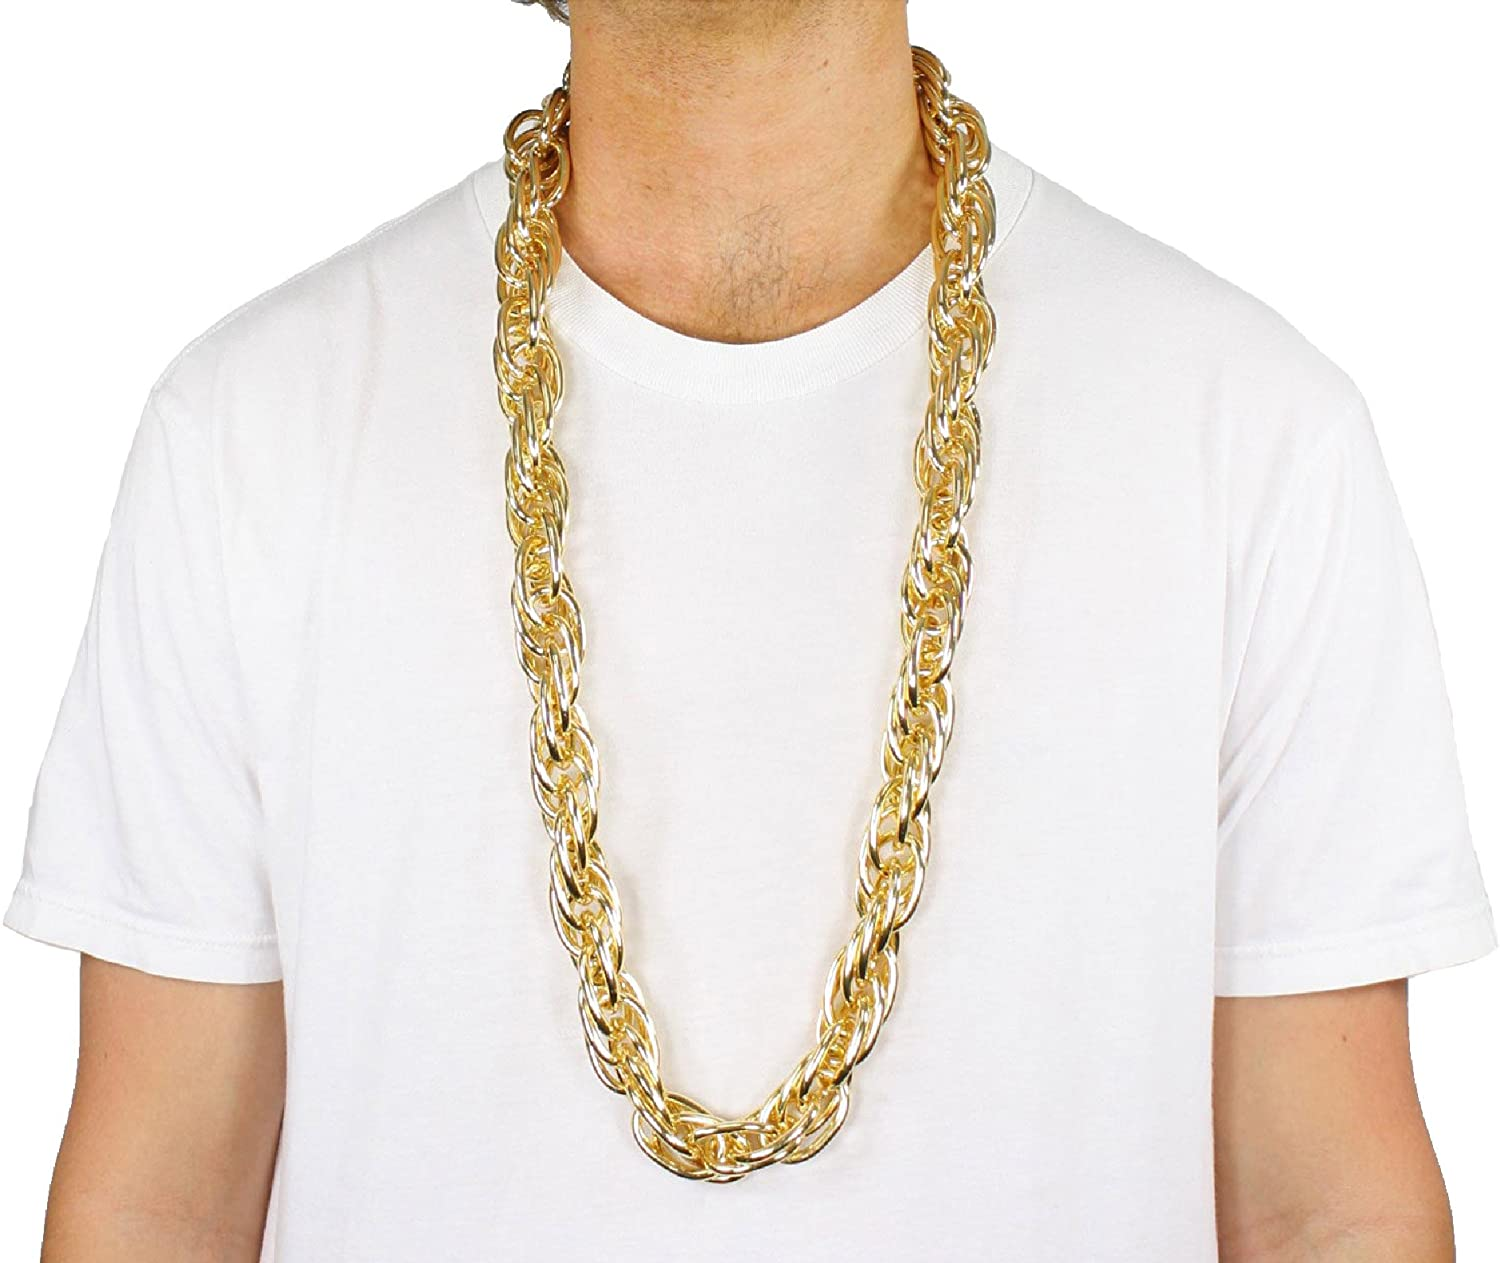 Amazon Com Largemouth 40 Heavy Rope Gold Pimp Chain Old School Rapper Costume Bling Gold Clothing Nsp carrier enf @nsp_carrierenf 9 июл. largemouth 40 heavy rope gold pimp chain old school rapper costume bling gold